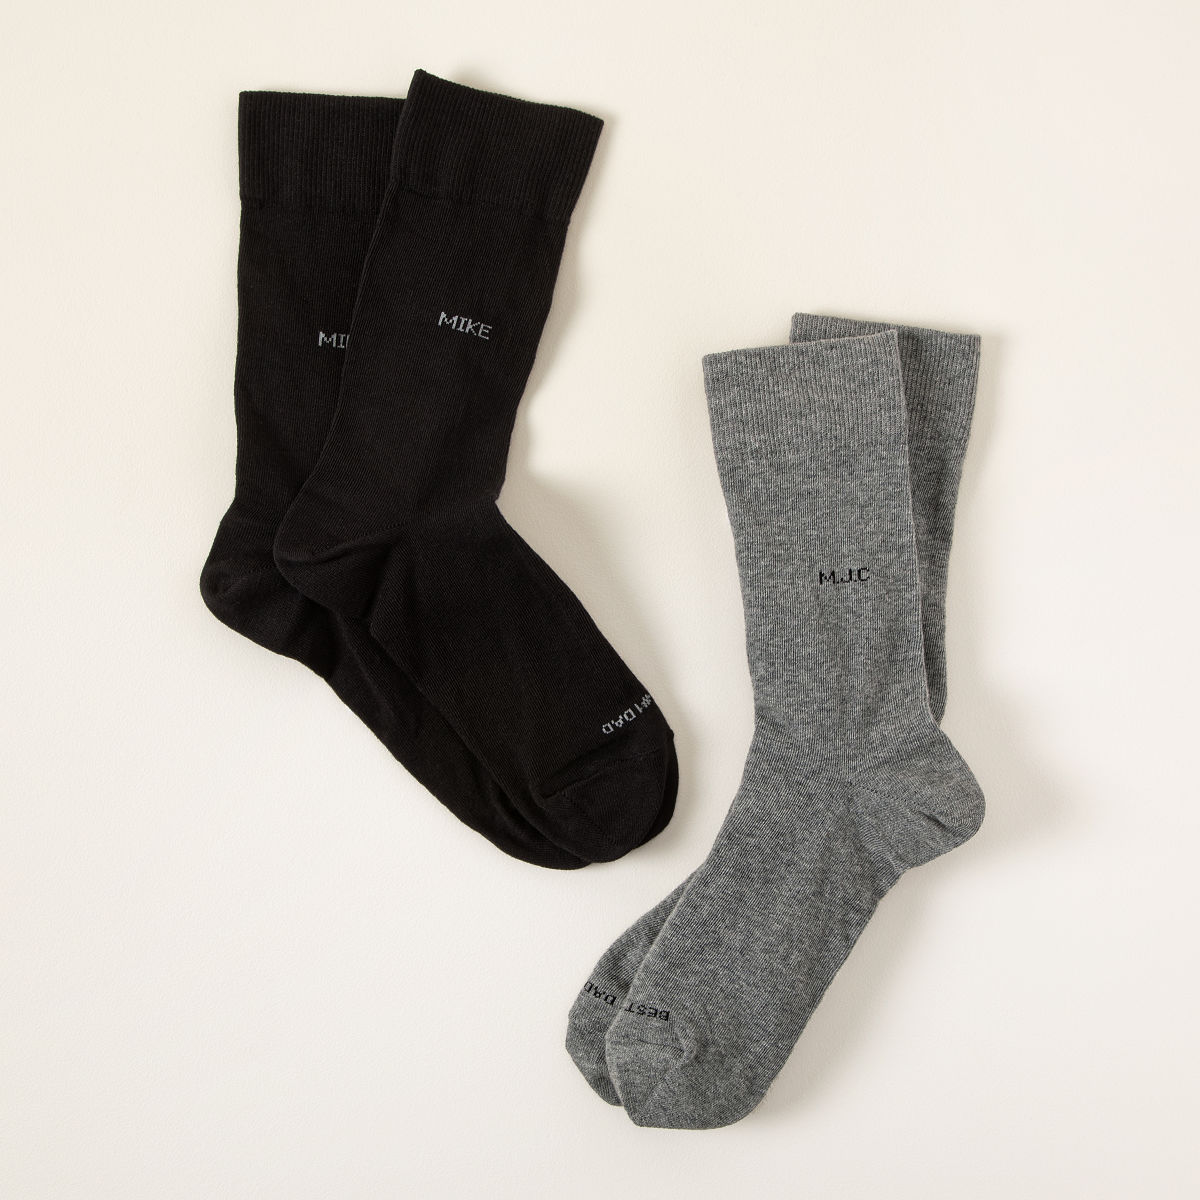 Gifts For Men Part - 17: Customizable Personalized Socks- Set Of 5 Pairs